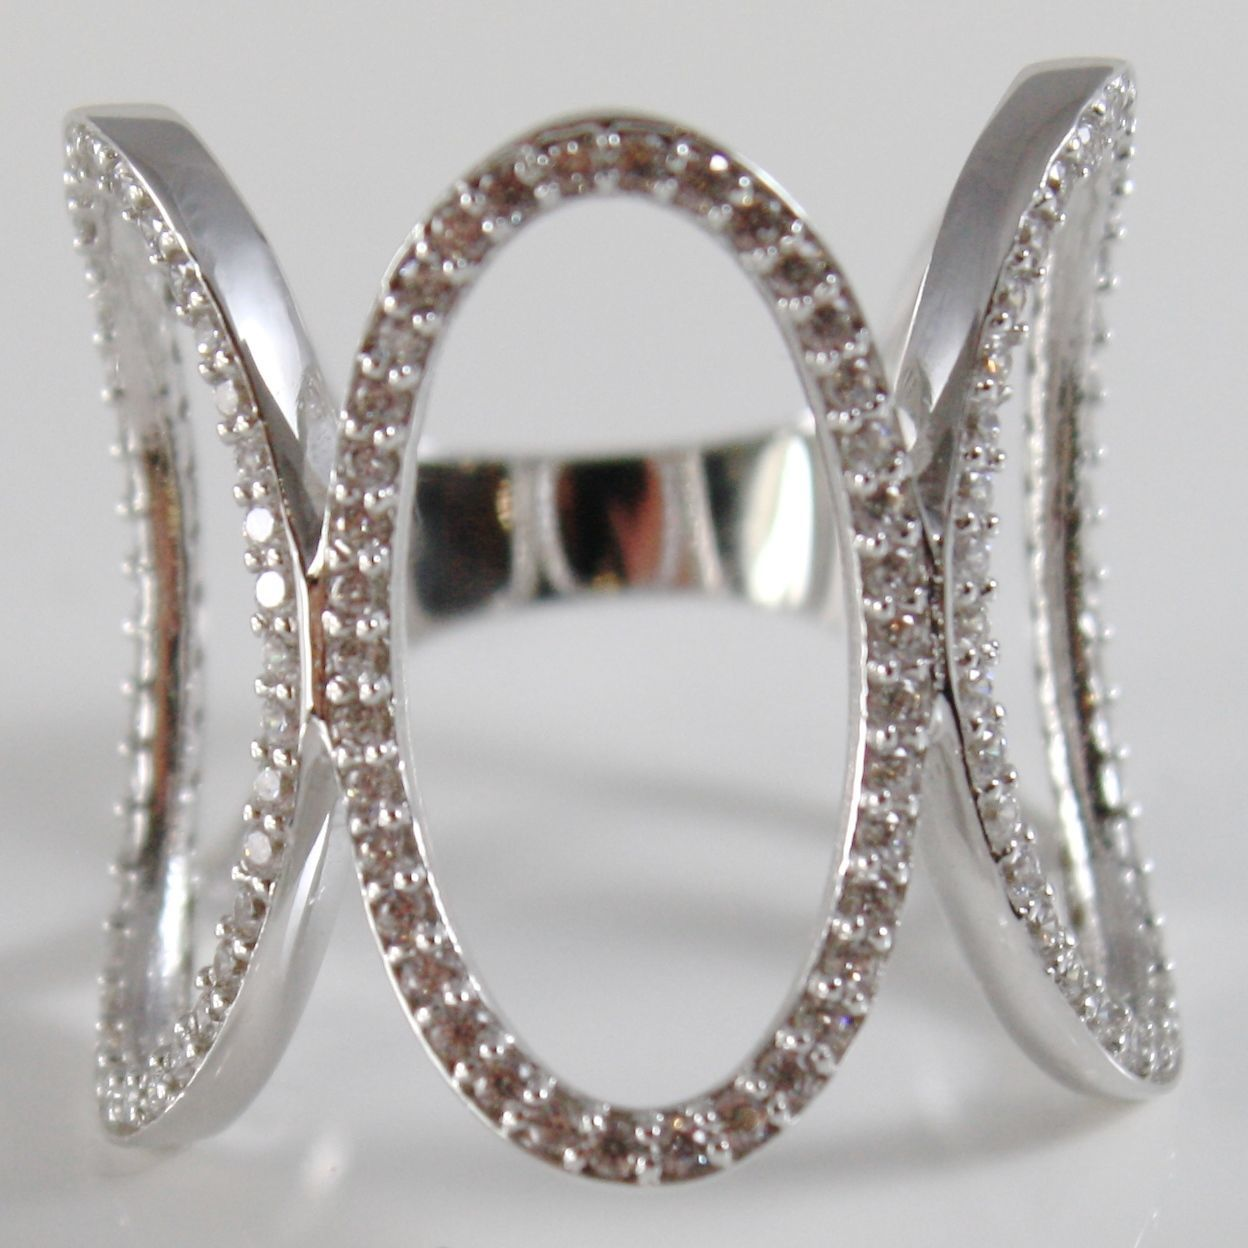 18K WHITE GOLD BAND RING, ALTERNATE BIG OVALS, OVAL WITH ZIRCONIA, MADE IN ITALY